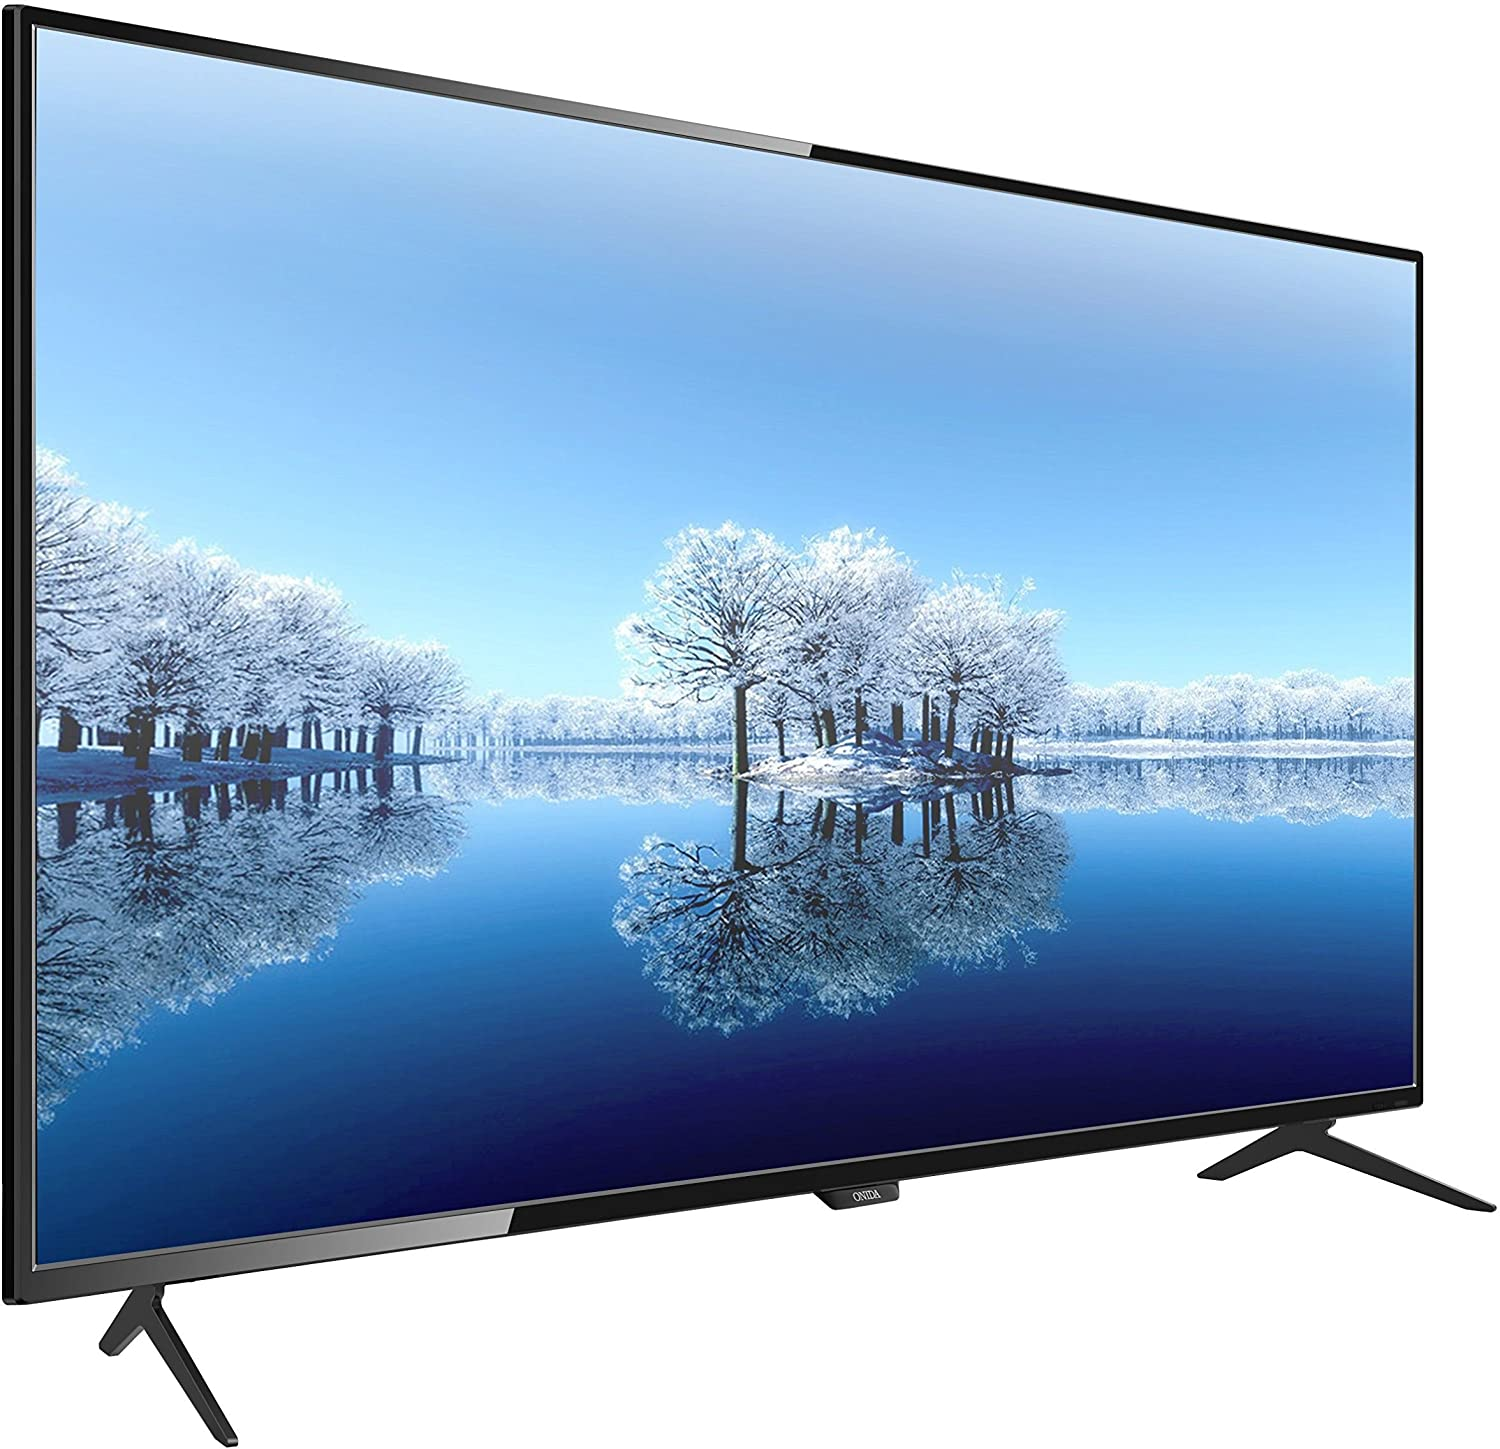 Best 50 inch 4k TVs in India under 50,000 - Onida 50UIB 4K UHD LED Smart TV